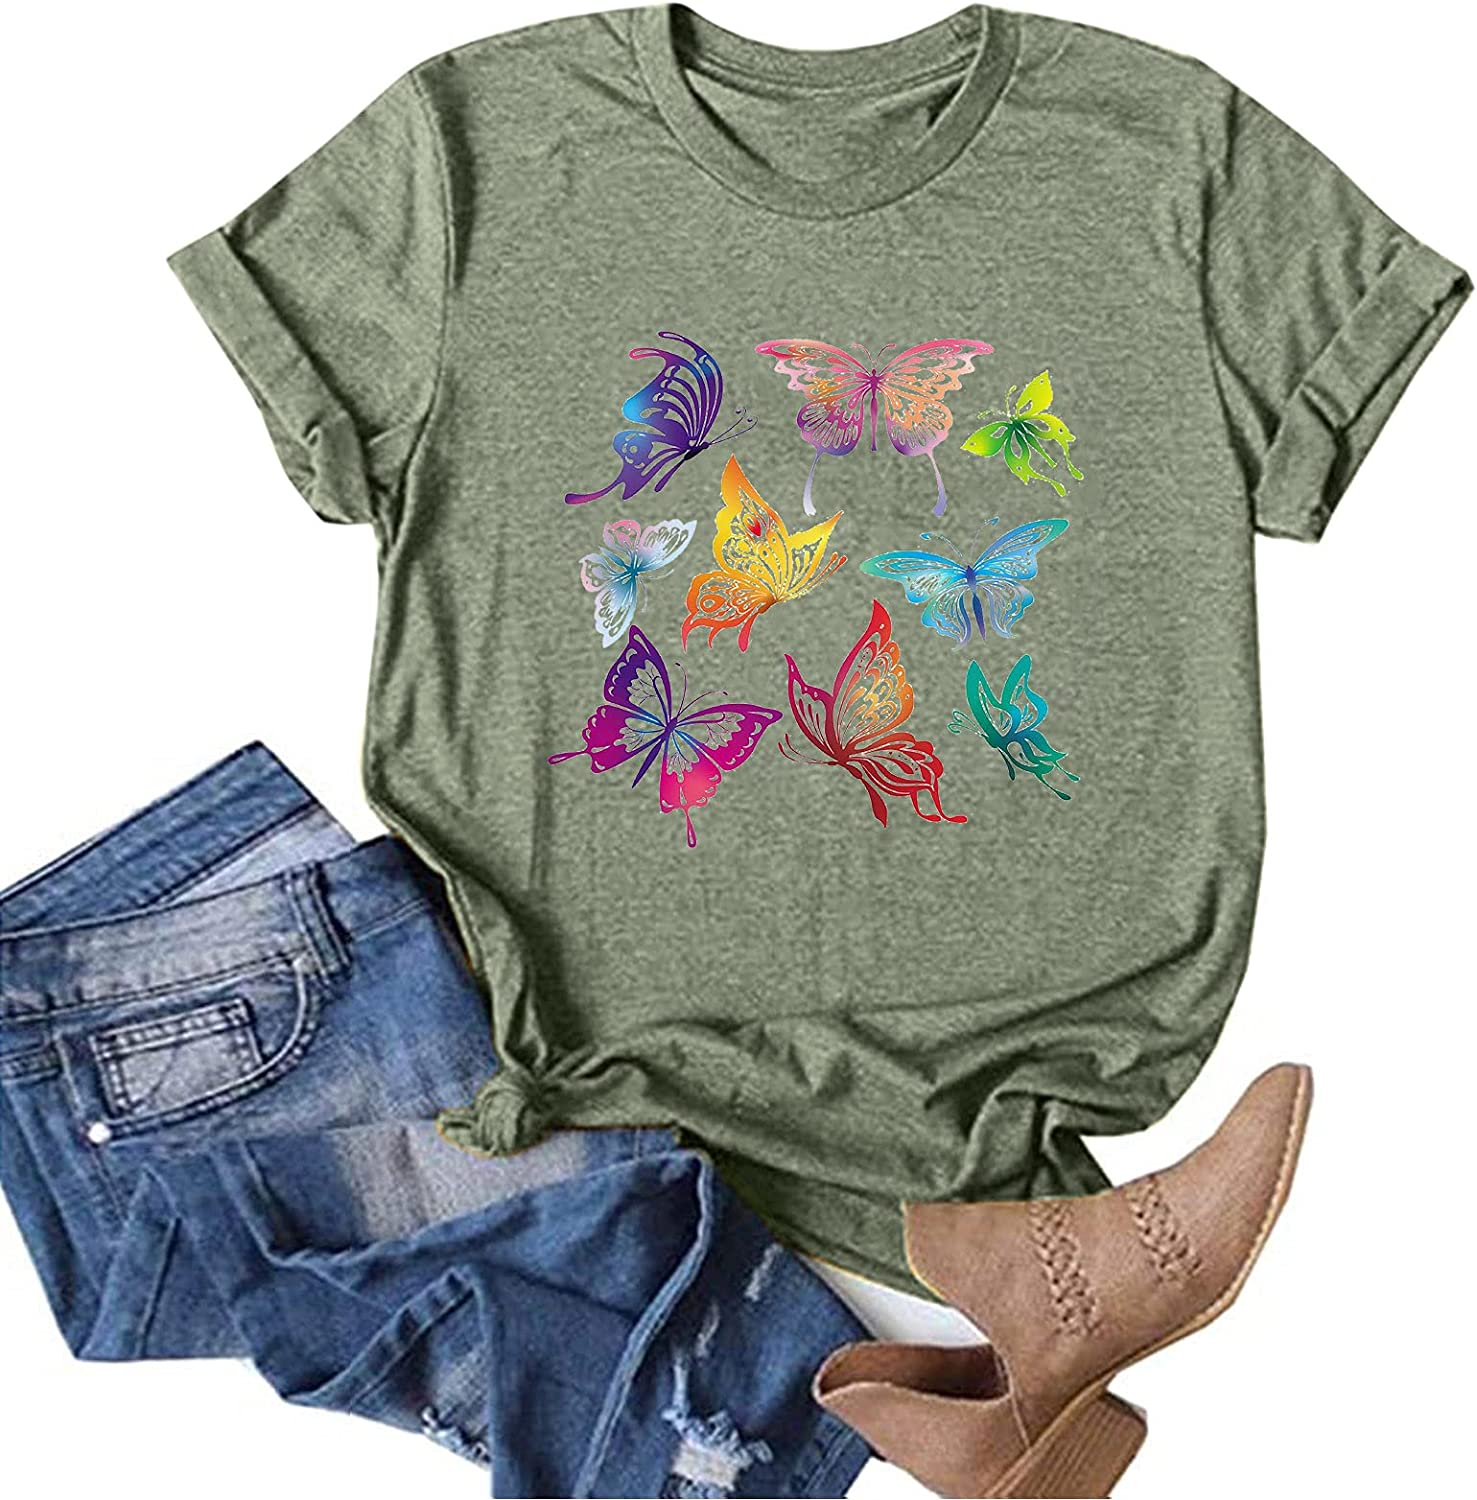 Blouses for Women Business Casual, Women's Plus Size Printed T-Shirt Casual Short-Sleeved Top